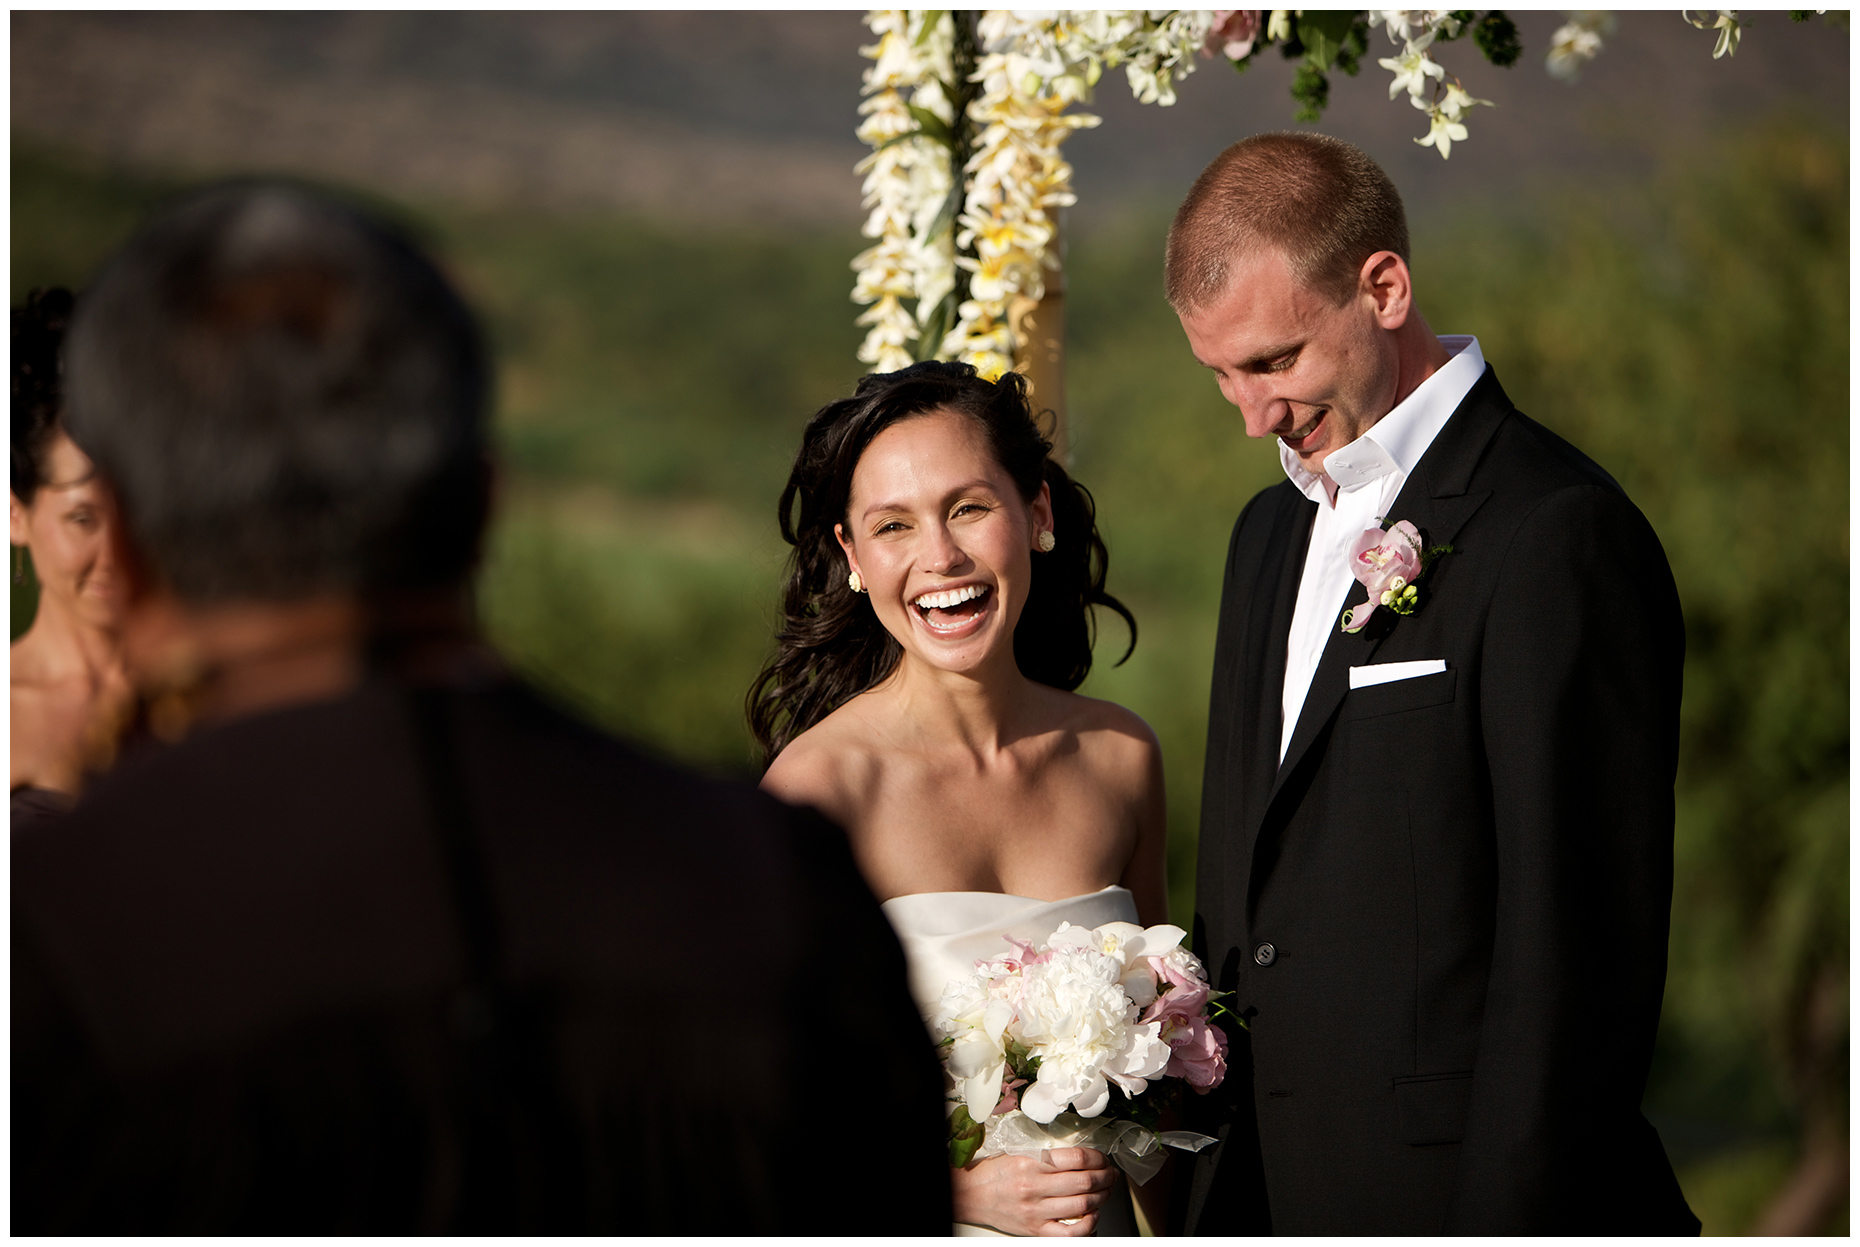 Jensen Larson Photography | Lanai Hawaii Wedding